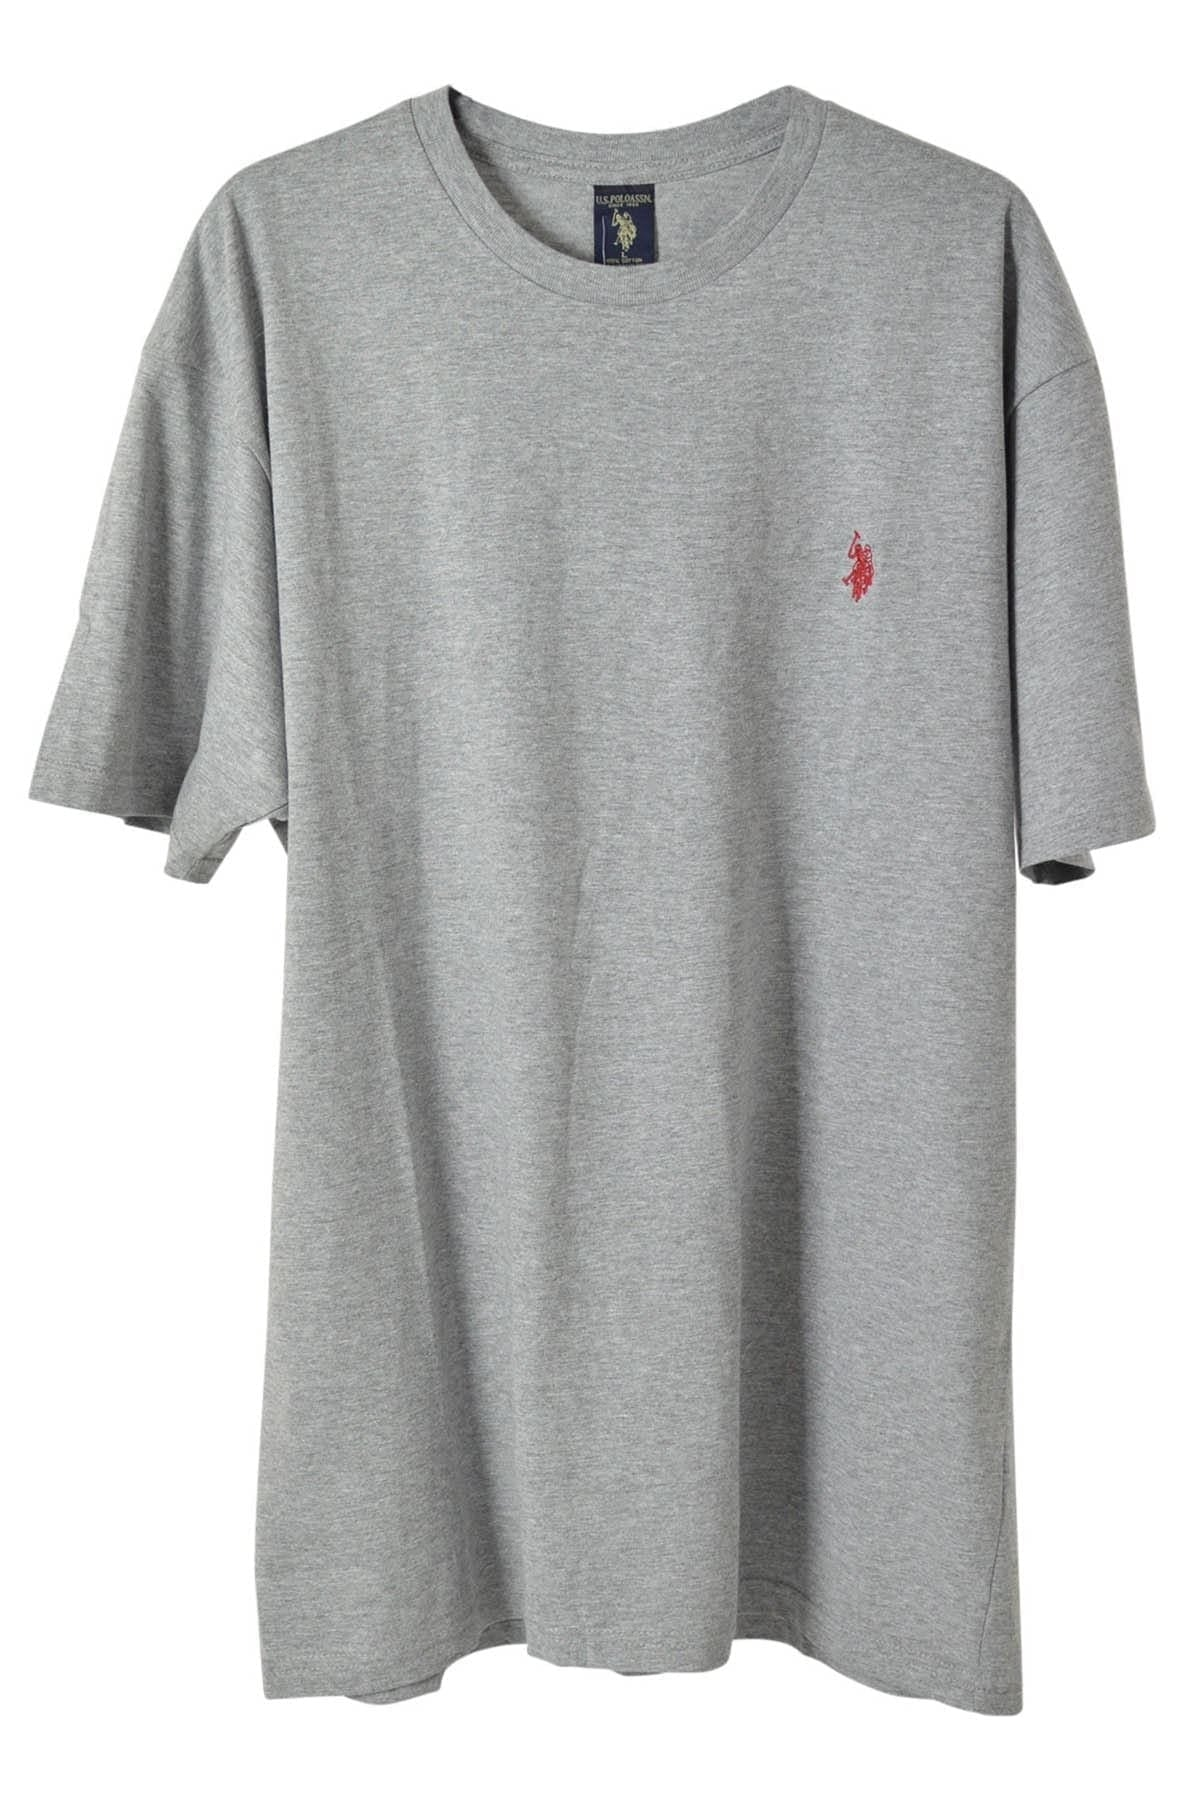 US Polo Assn. US Polo Assn. Cotton Crew Neck T-Shirt | Large / Charcoal Grey Secret Label